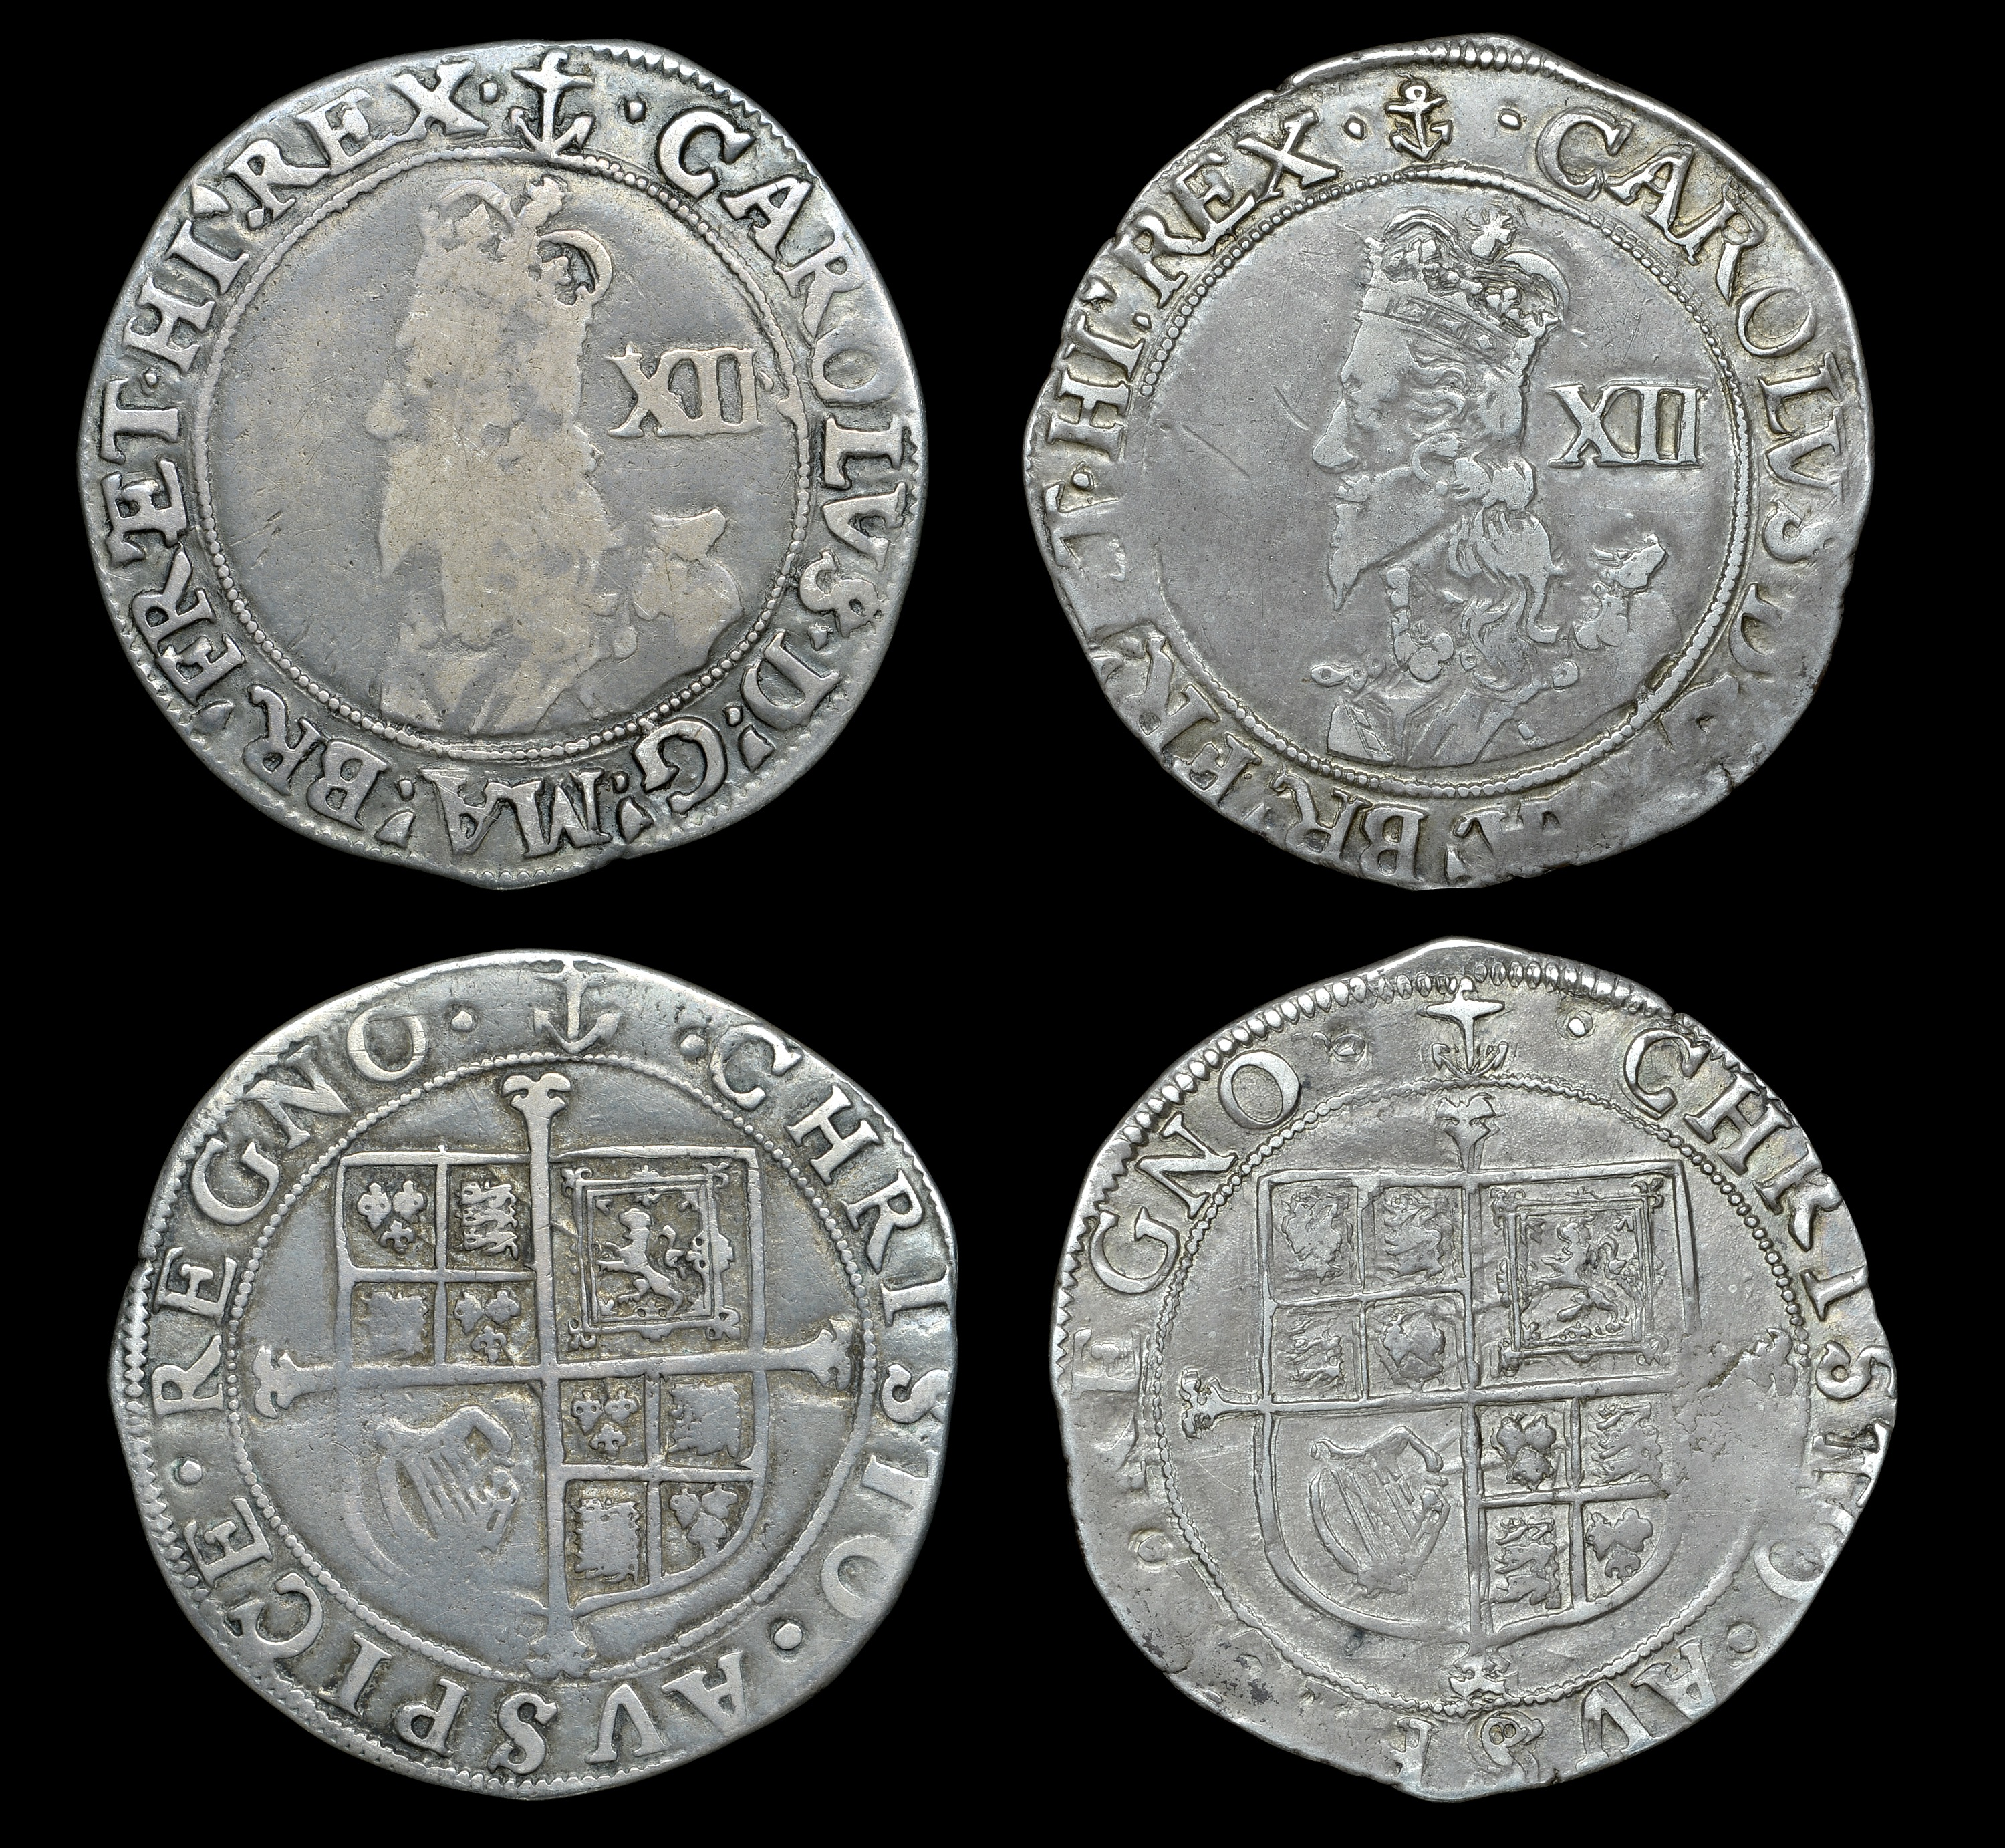 Lot 25 - The Collection of British Coins Formed by the Late Ray Inder (Part IV)